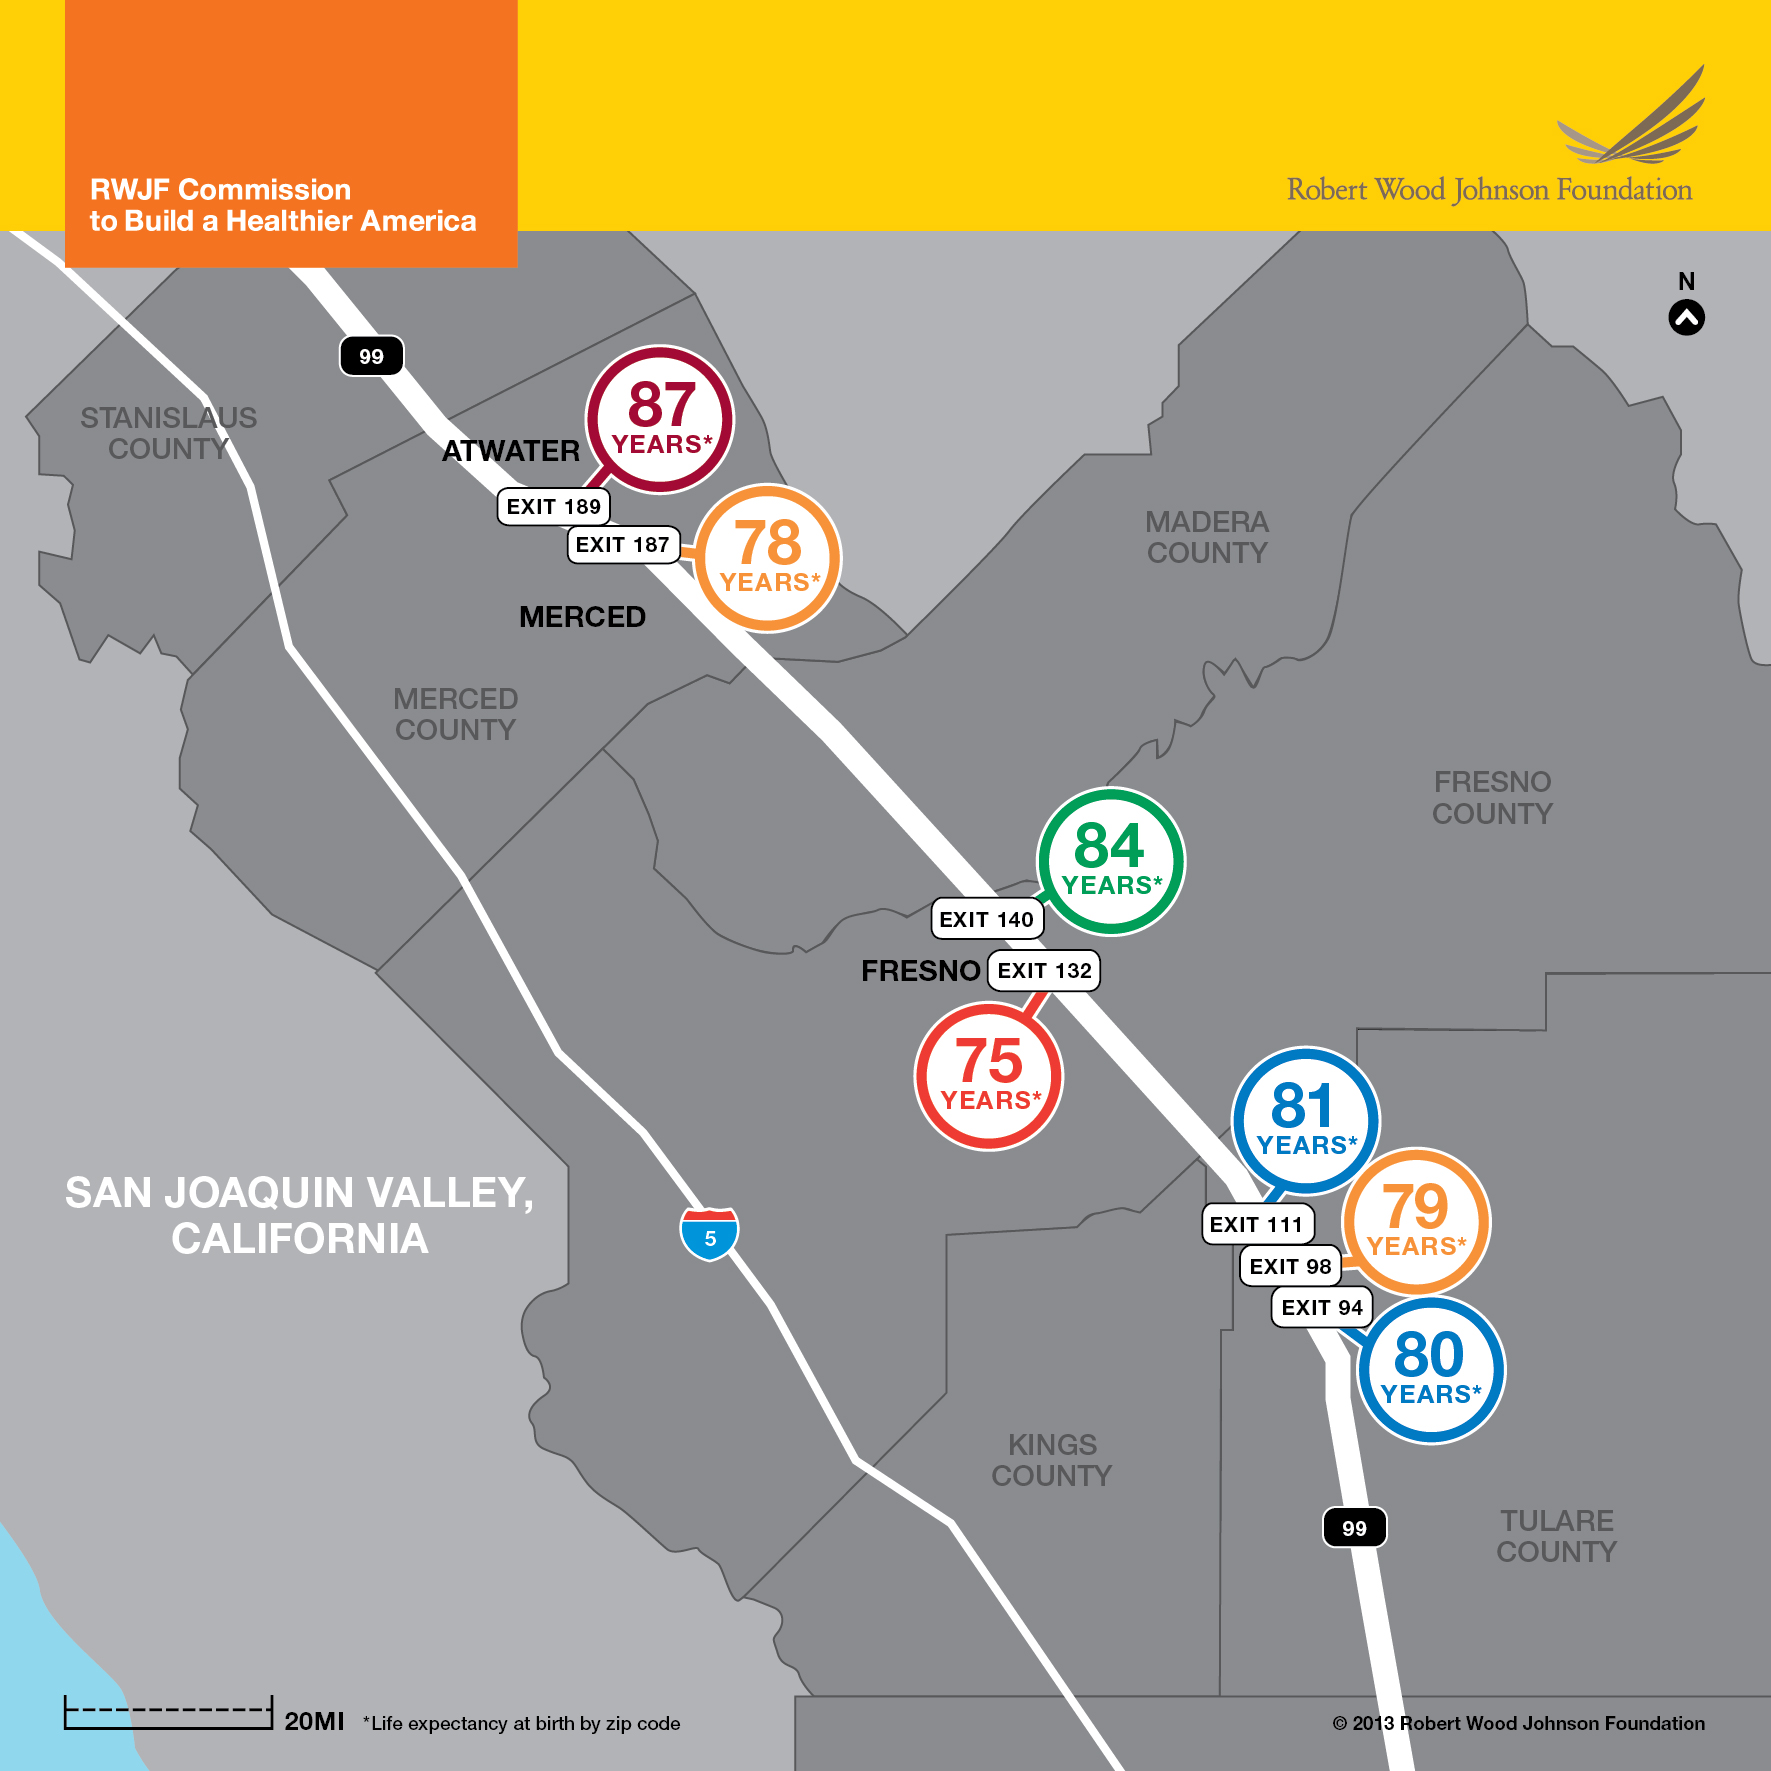 In the San Joaquin Valley, life expectancy can vary by 12 years across highway exits